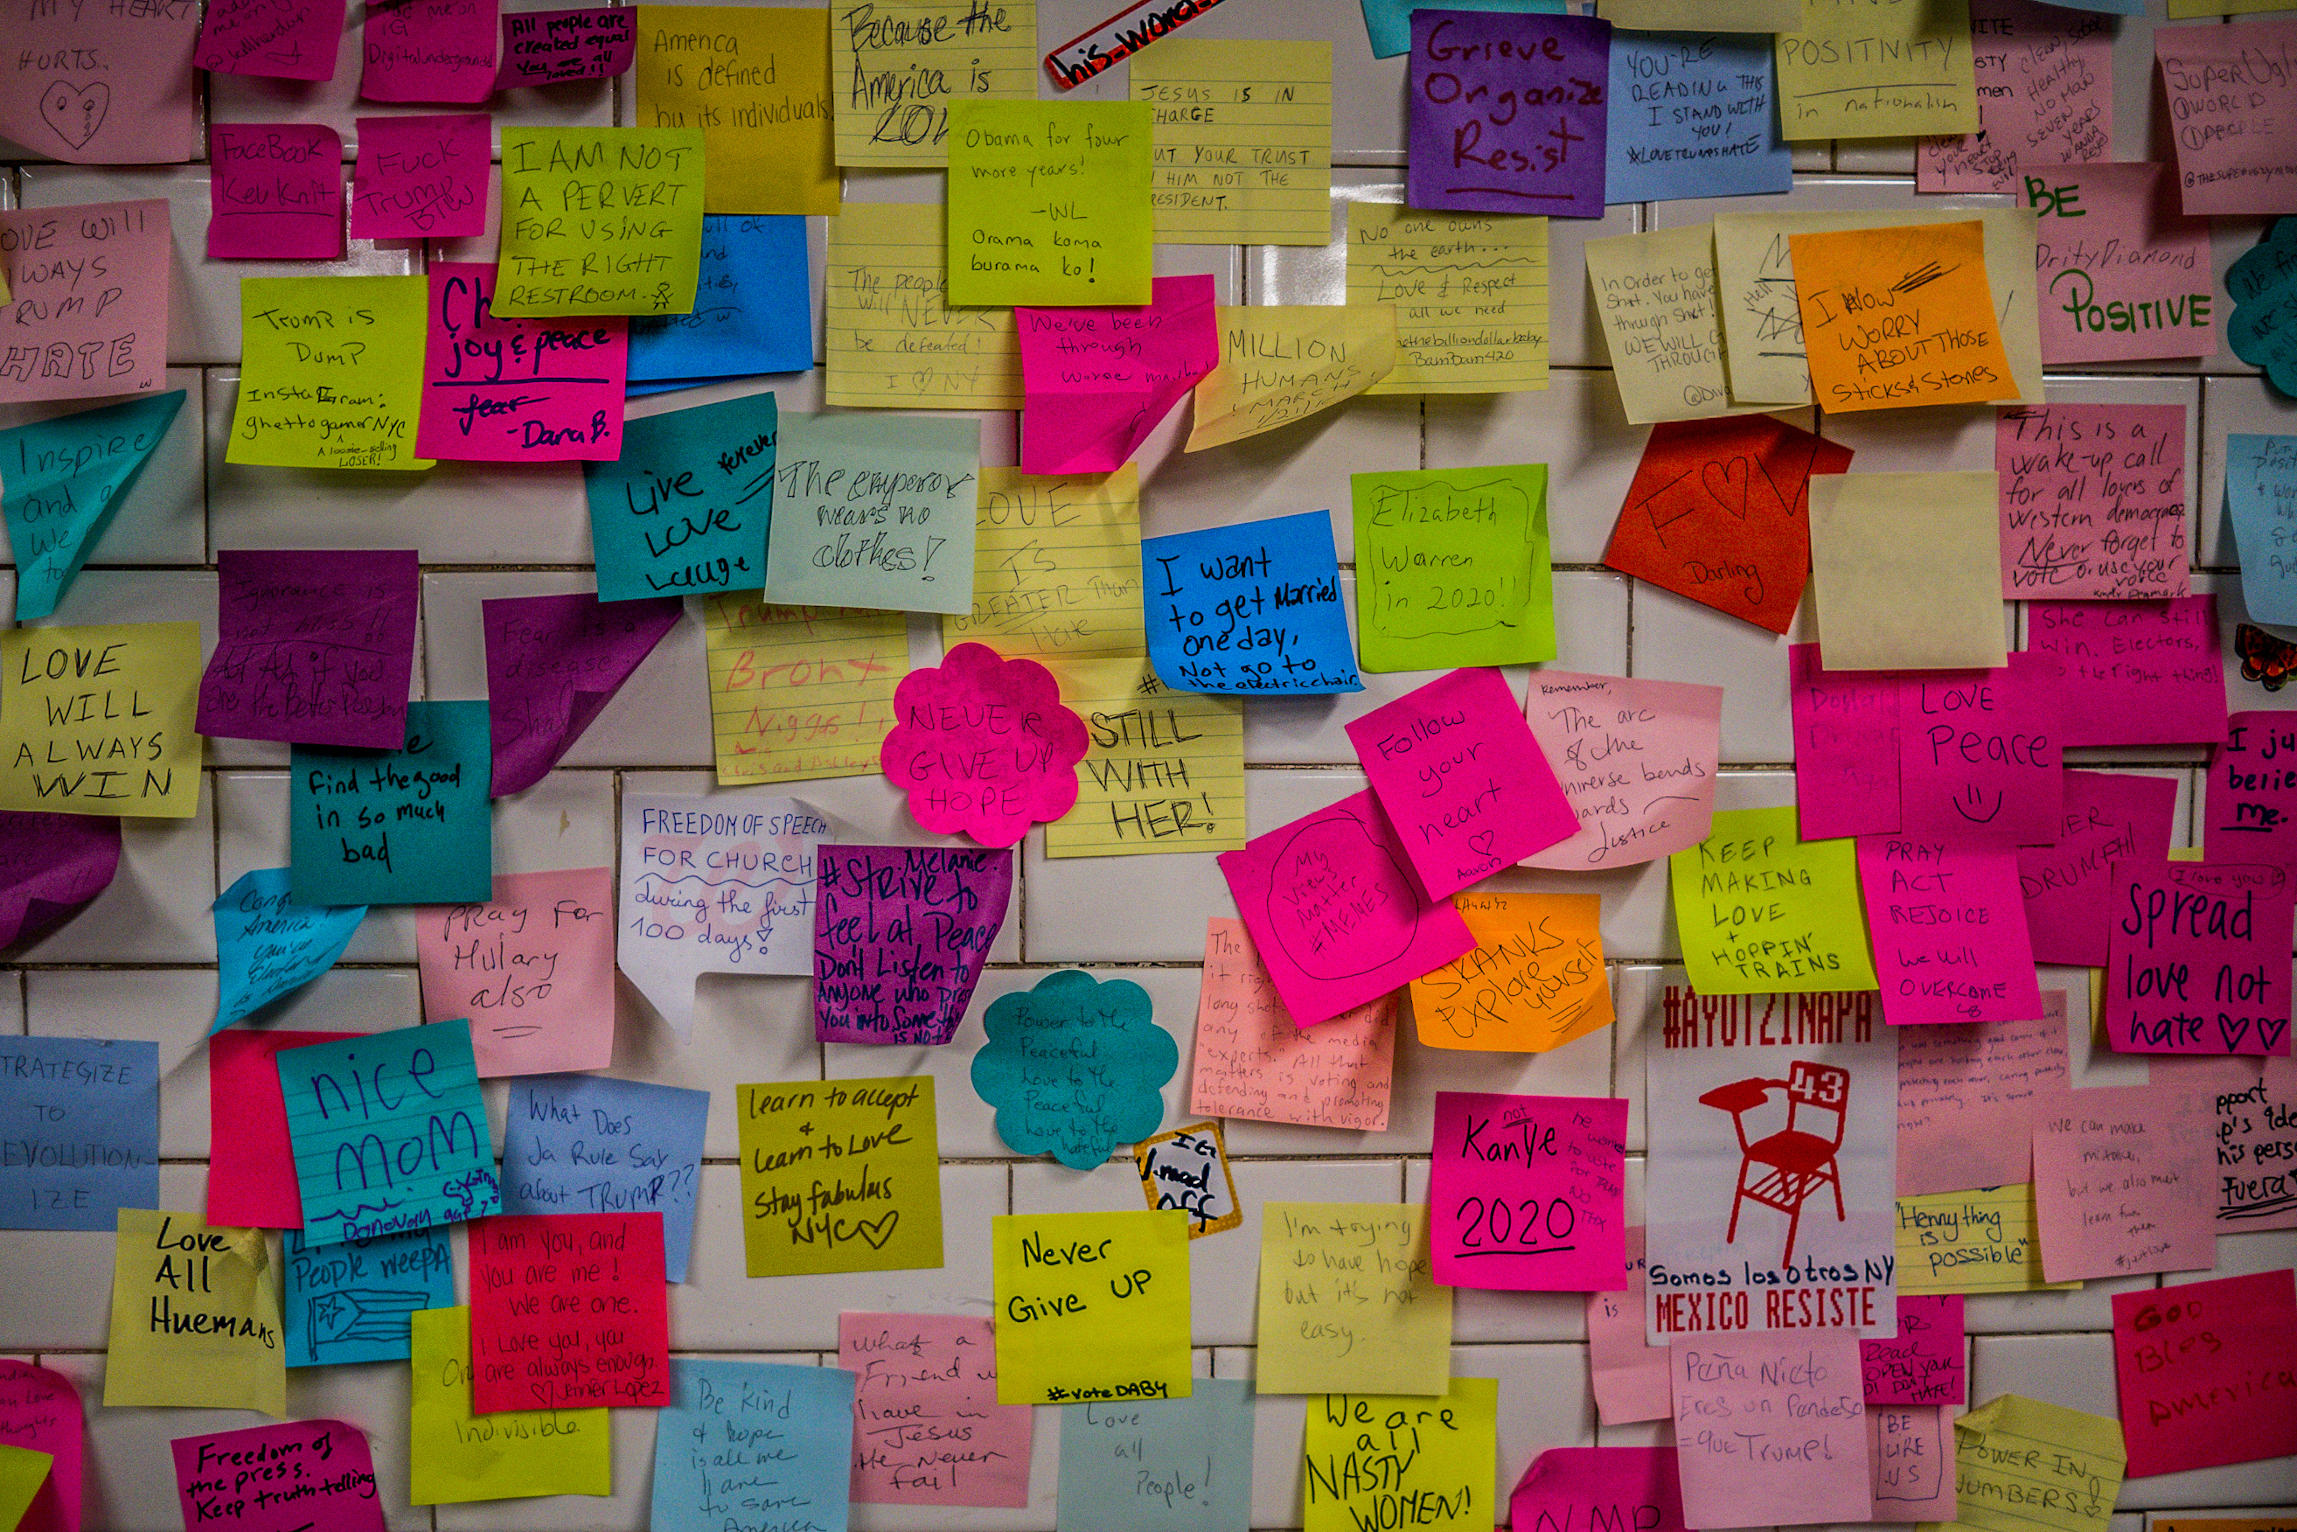 sticky notes as therapy in new york subway